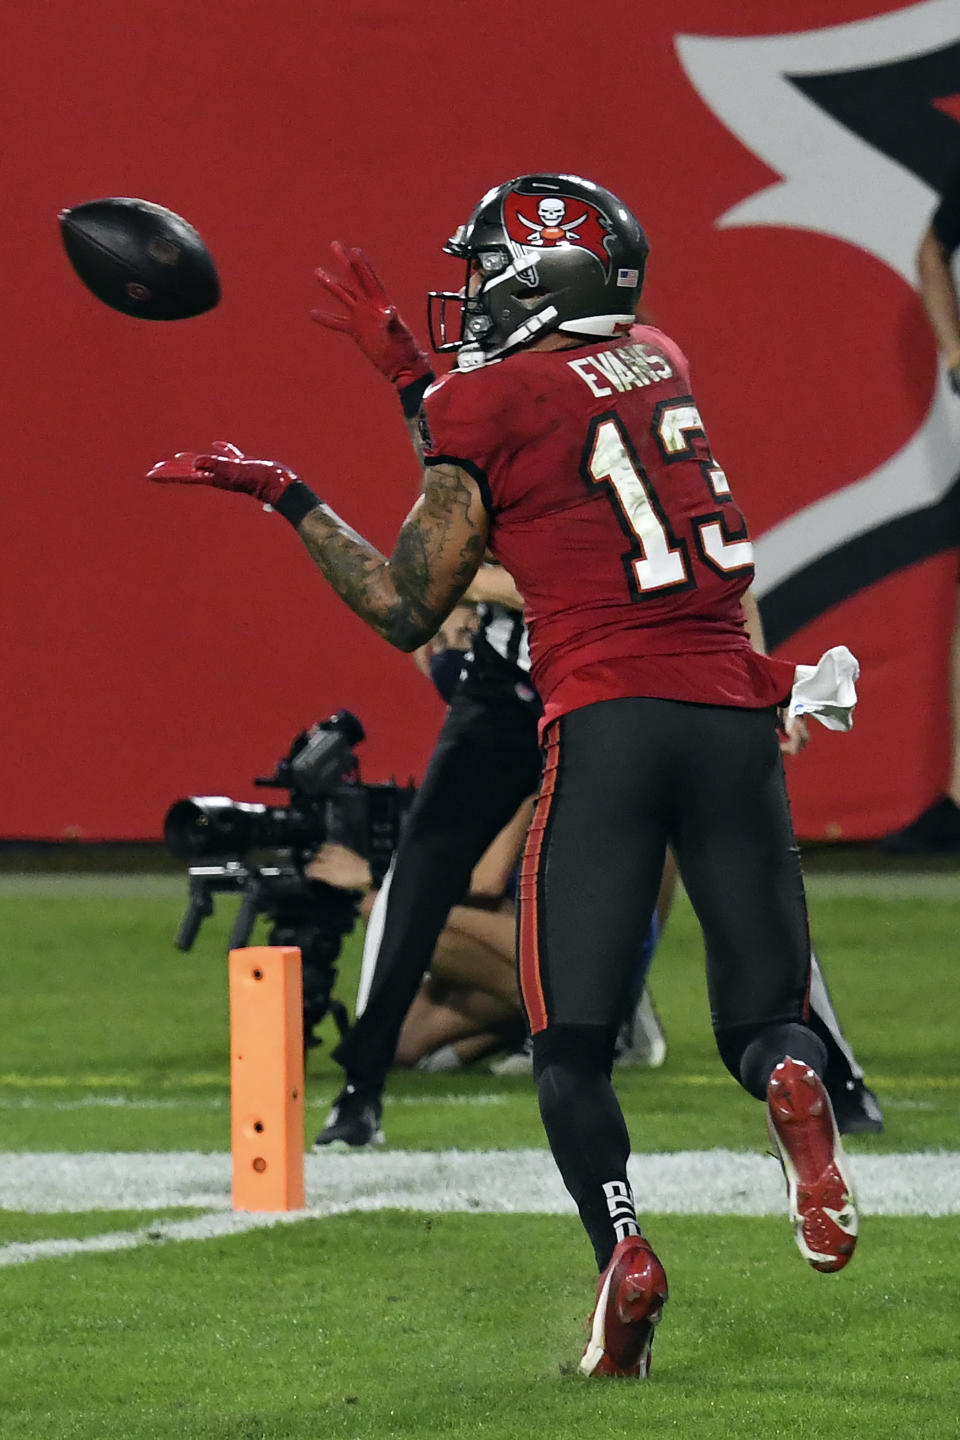 Tampa Bay Buccaneers wide receiver Mike Evans (13) pulls in a touchdown against the Kansas City Chiefs during the second half of an NFL football game Sunday, Nov. 29, 2020, in Tampa, Fla. (AP Photo/Jason Behnken)